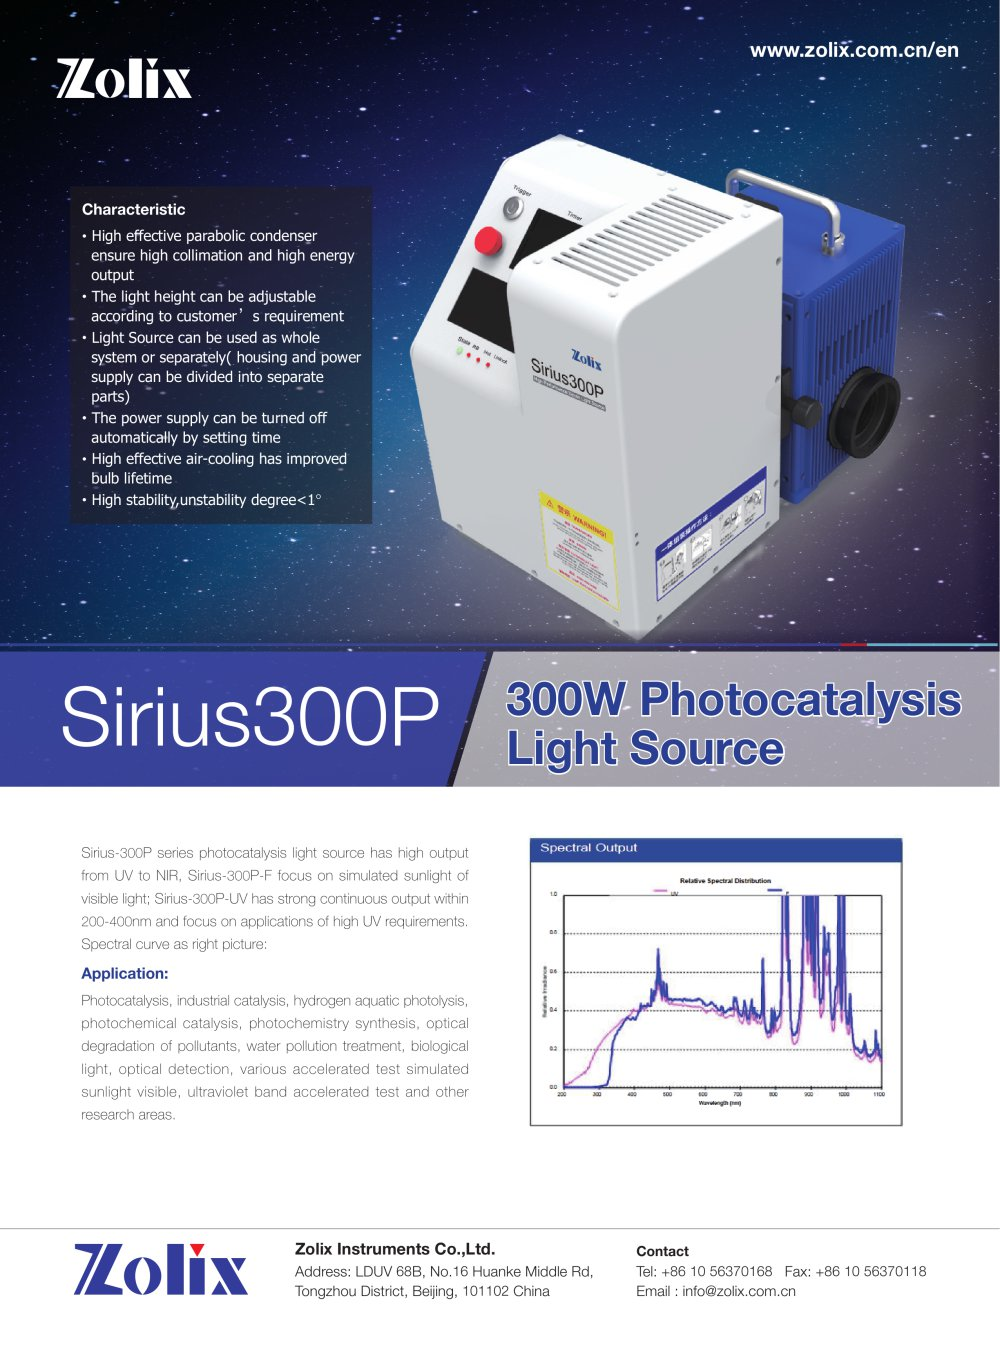 Zolix Sirius 300w Light Source Photocatalysis Xenon Power Supply Is Turned Off Automatically 1 2 Pages